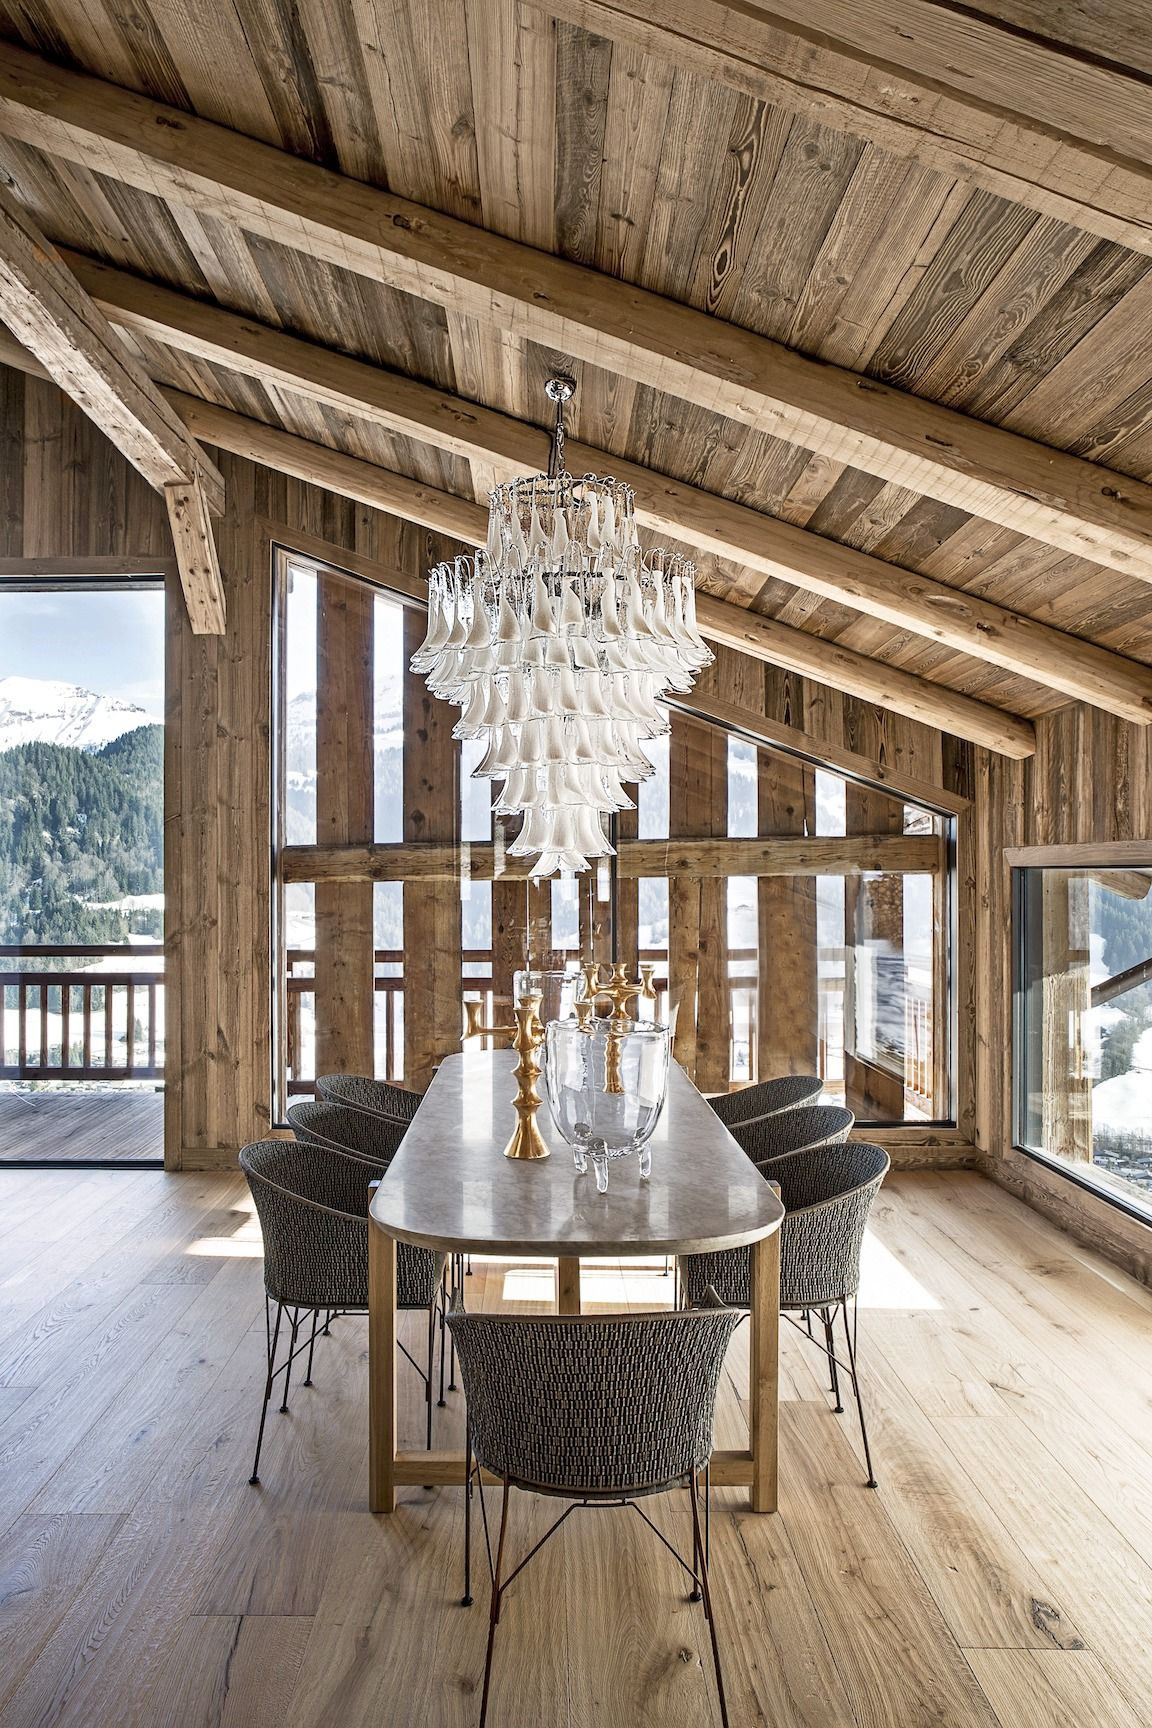 Wood Chalet France Home Tour